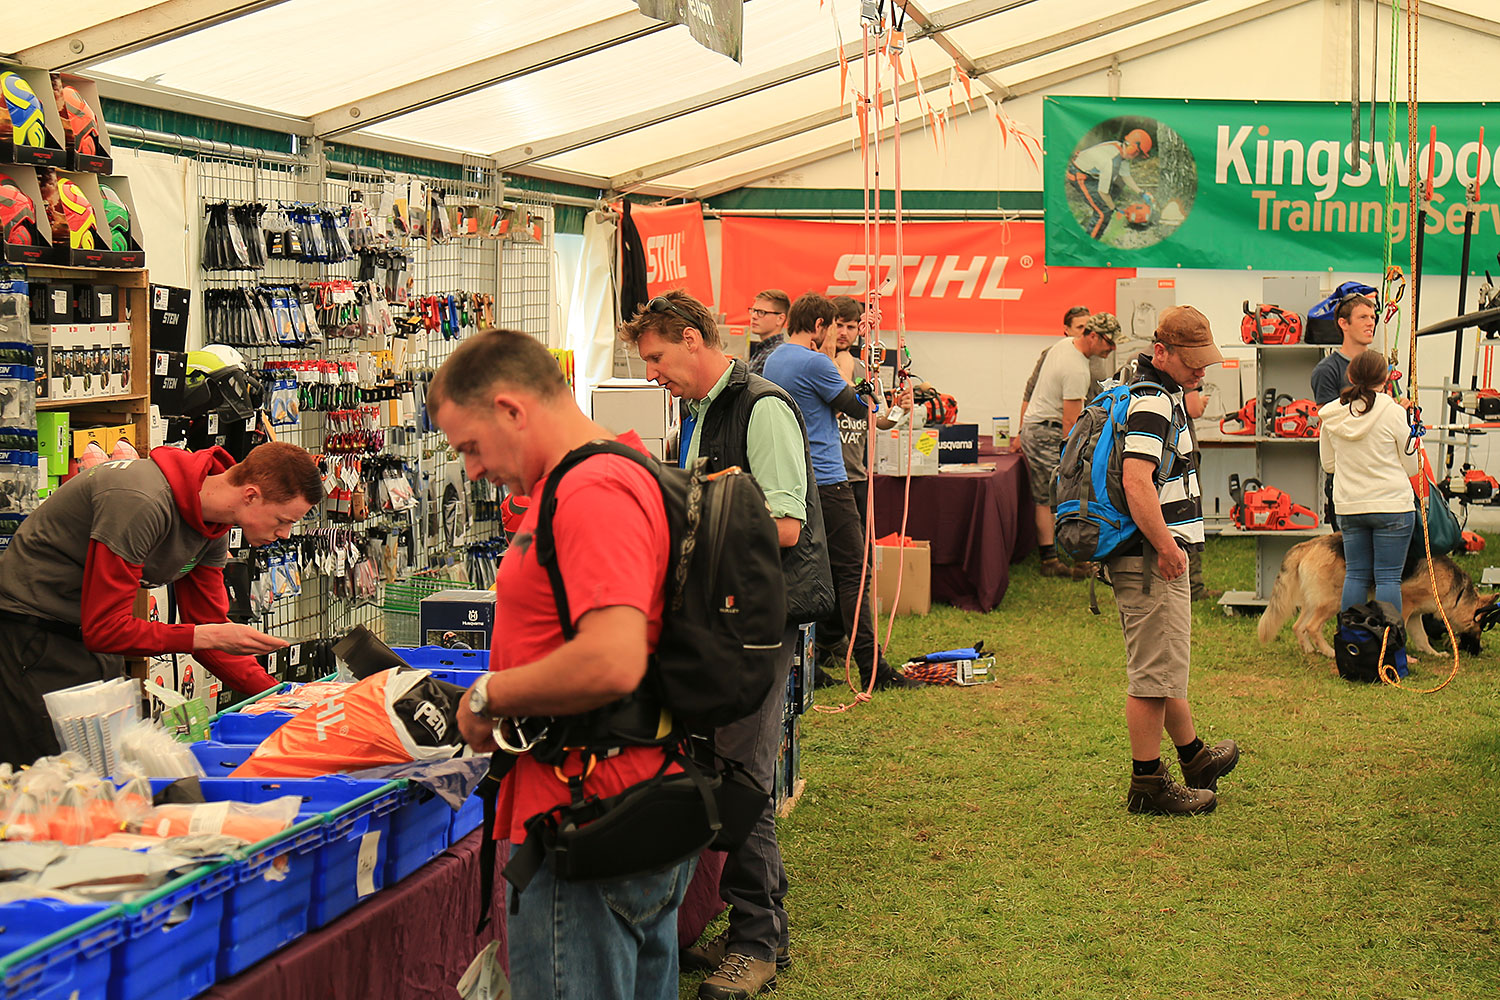 Come and get all you need that's ARB related. All your gear and equipment – all in one convenient location